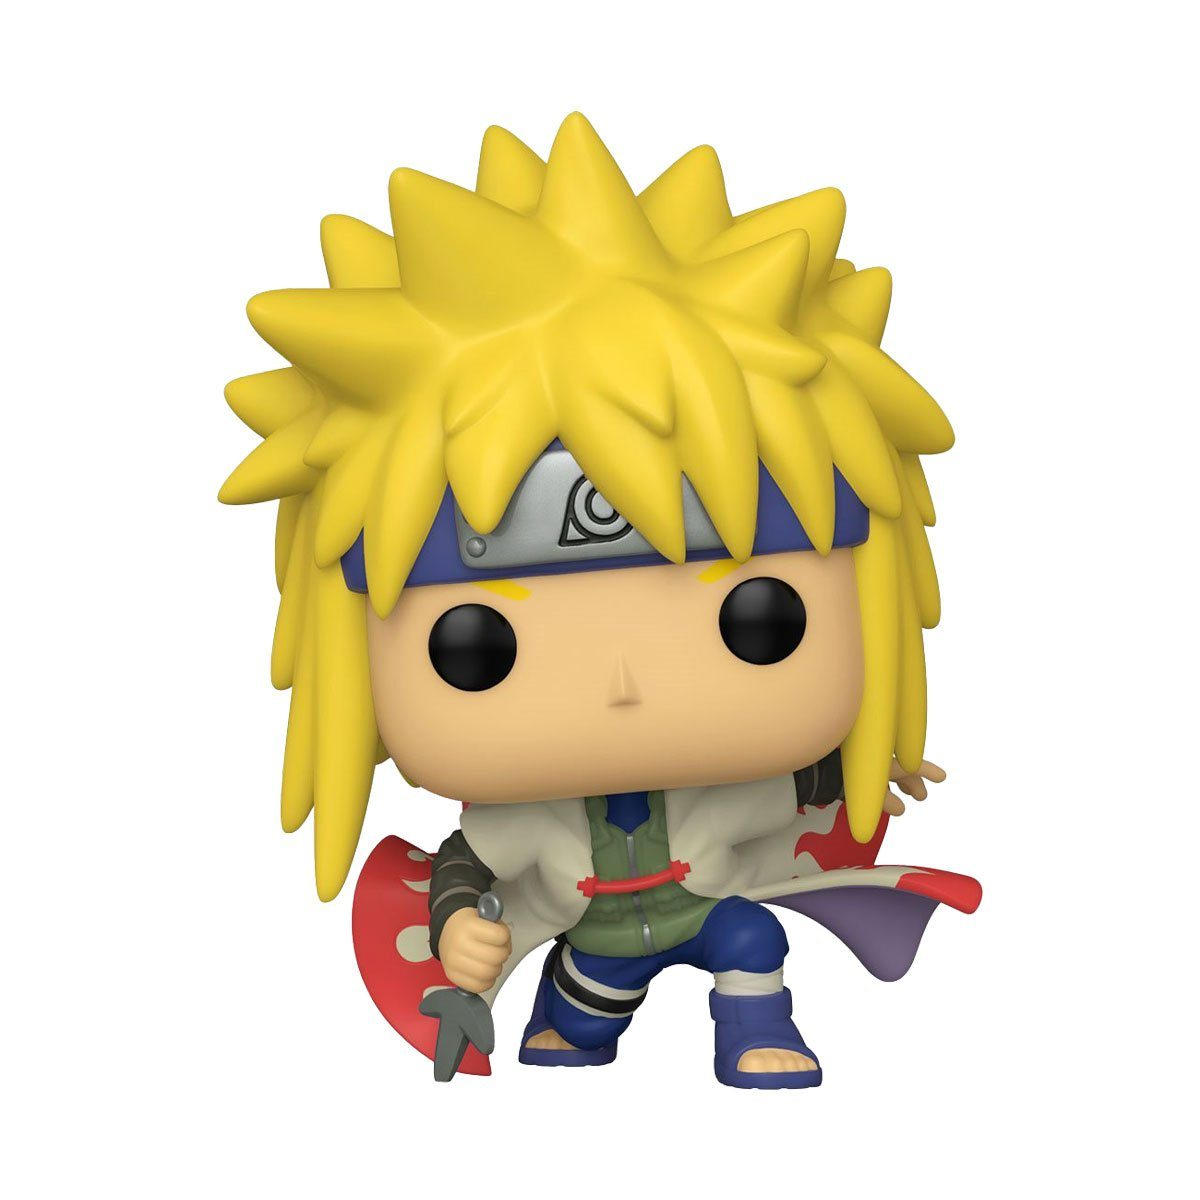 Minato Namikaze Naruto Funko POP! Animation [PRE-ORDER FOR MAR 2021* DELIVERY] POP! Funko